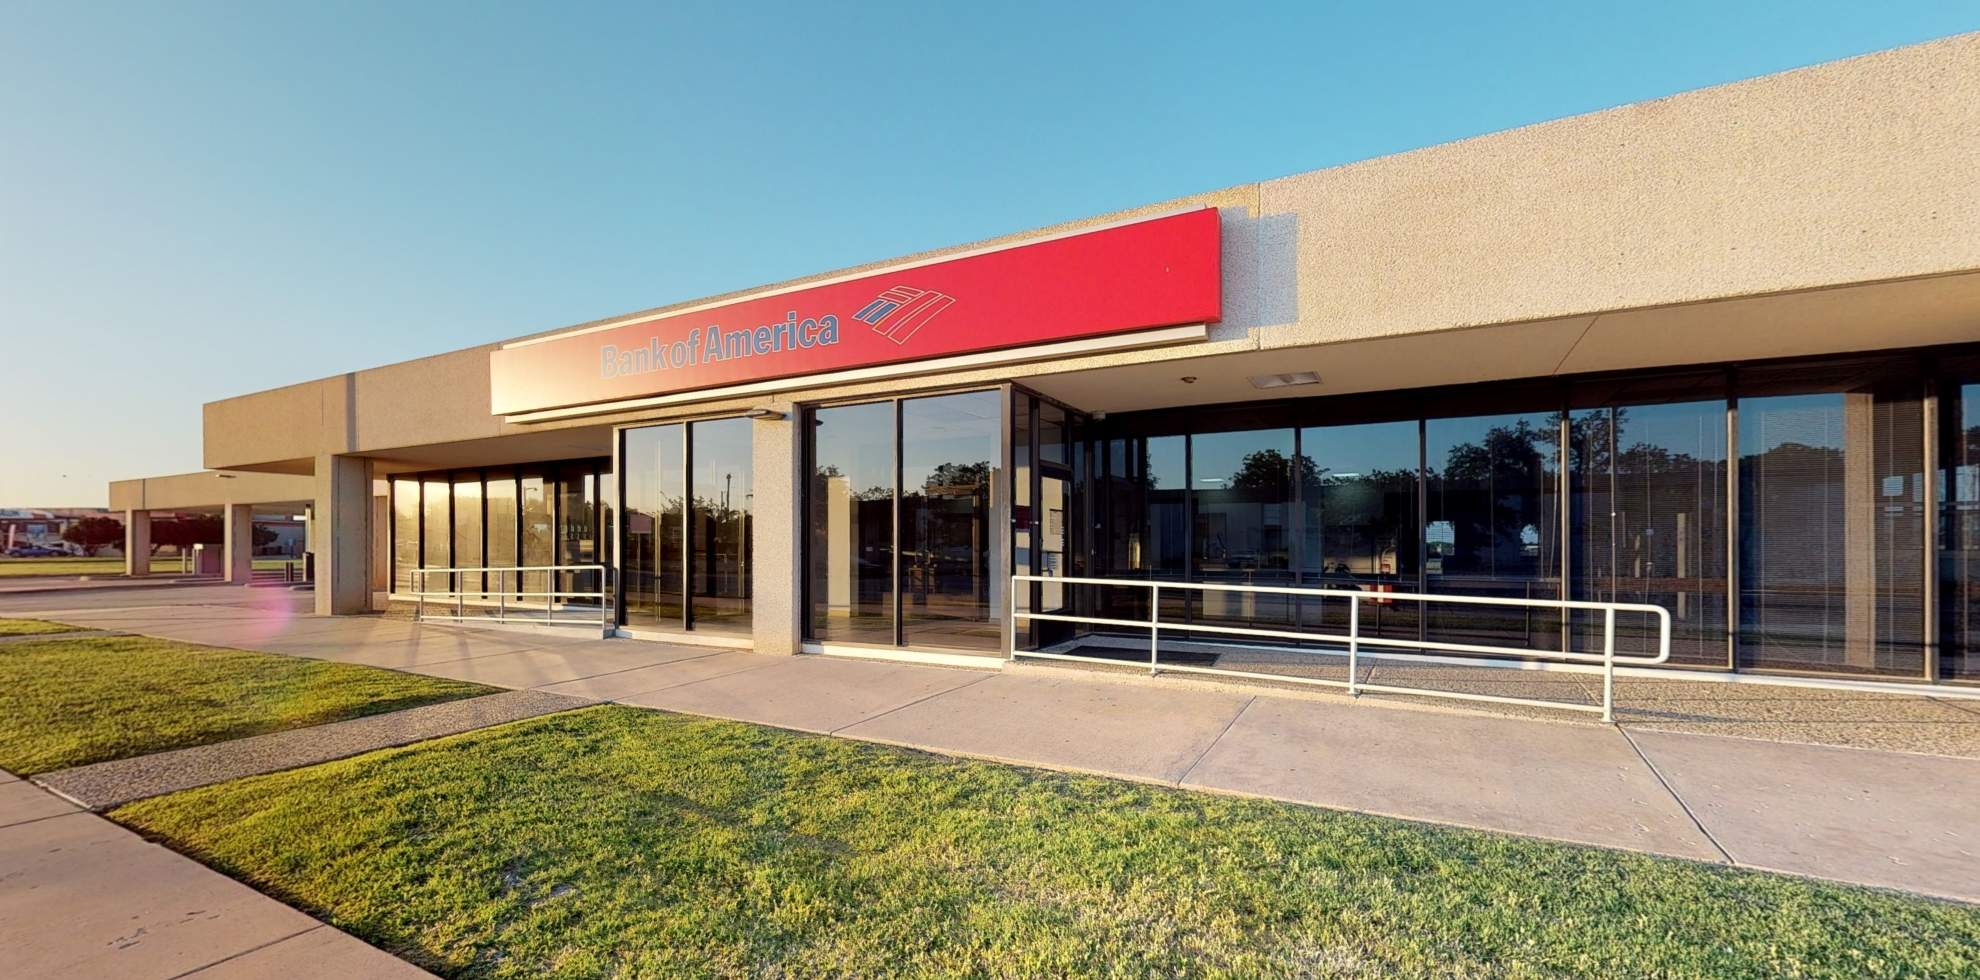 Bank of America financial center with drive-thru ATM   2200 S 27th St, Abilene, TX 79605